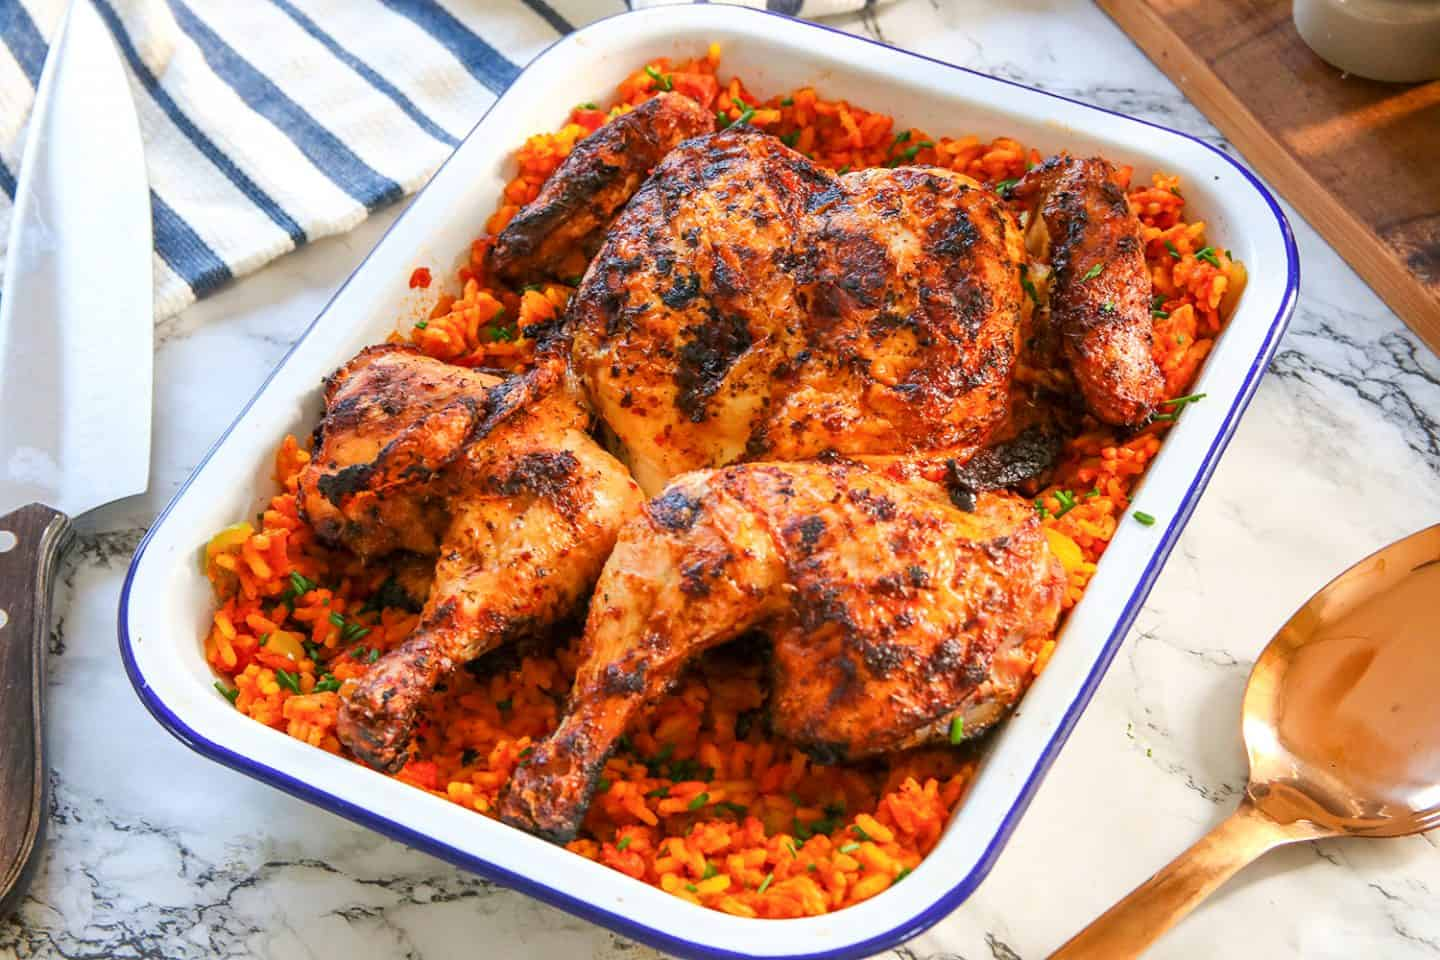 Gluten Free Peri-Peri Chicken Recipe with Spicy Rice - Nando's style - (low FODMAP)